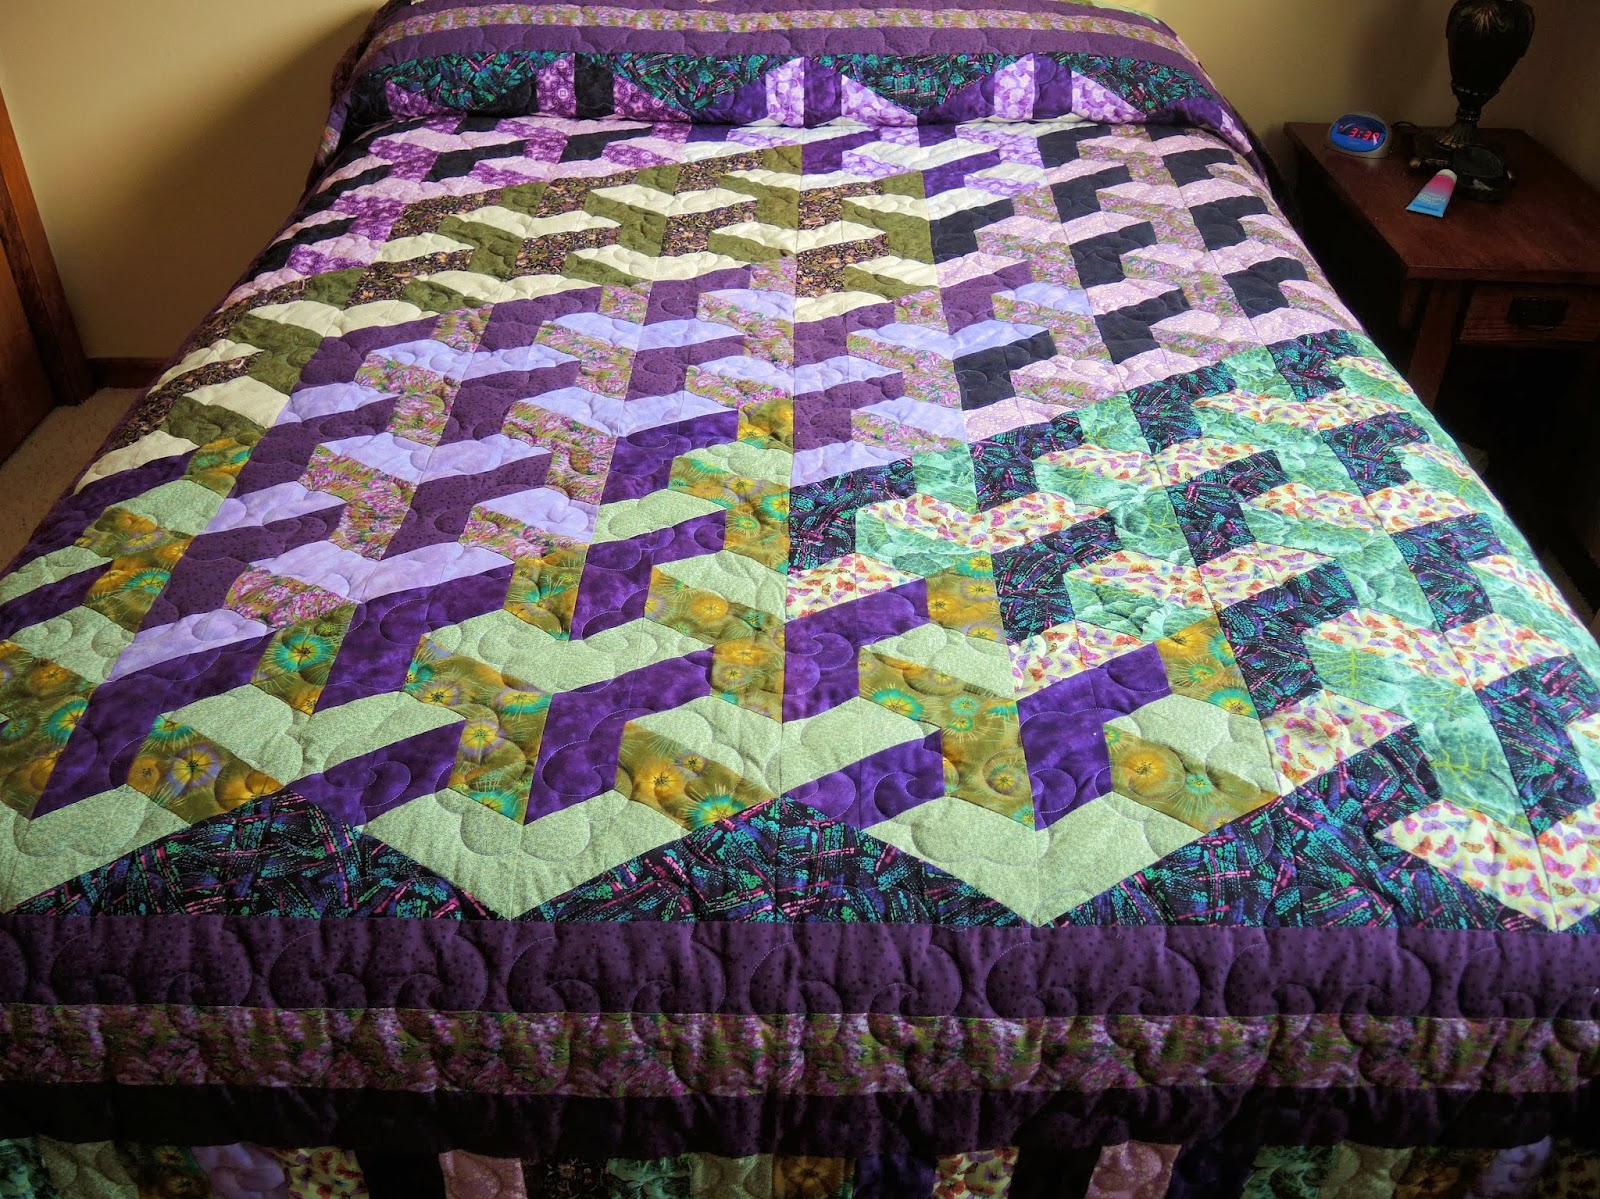 Quilt made by Sharon Hartman